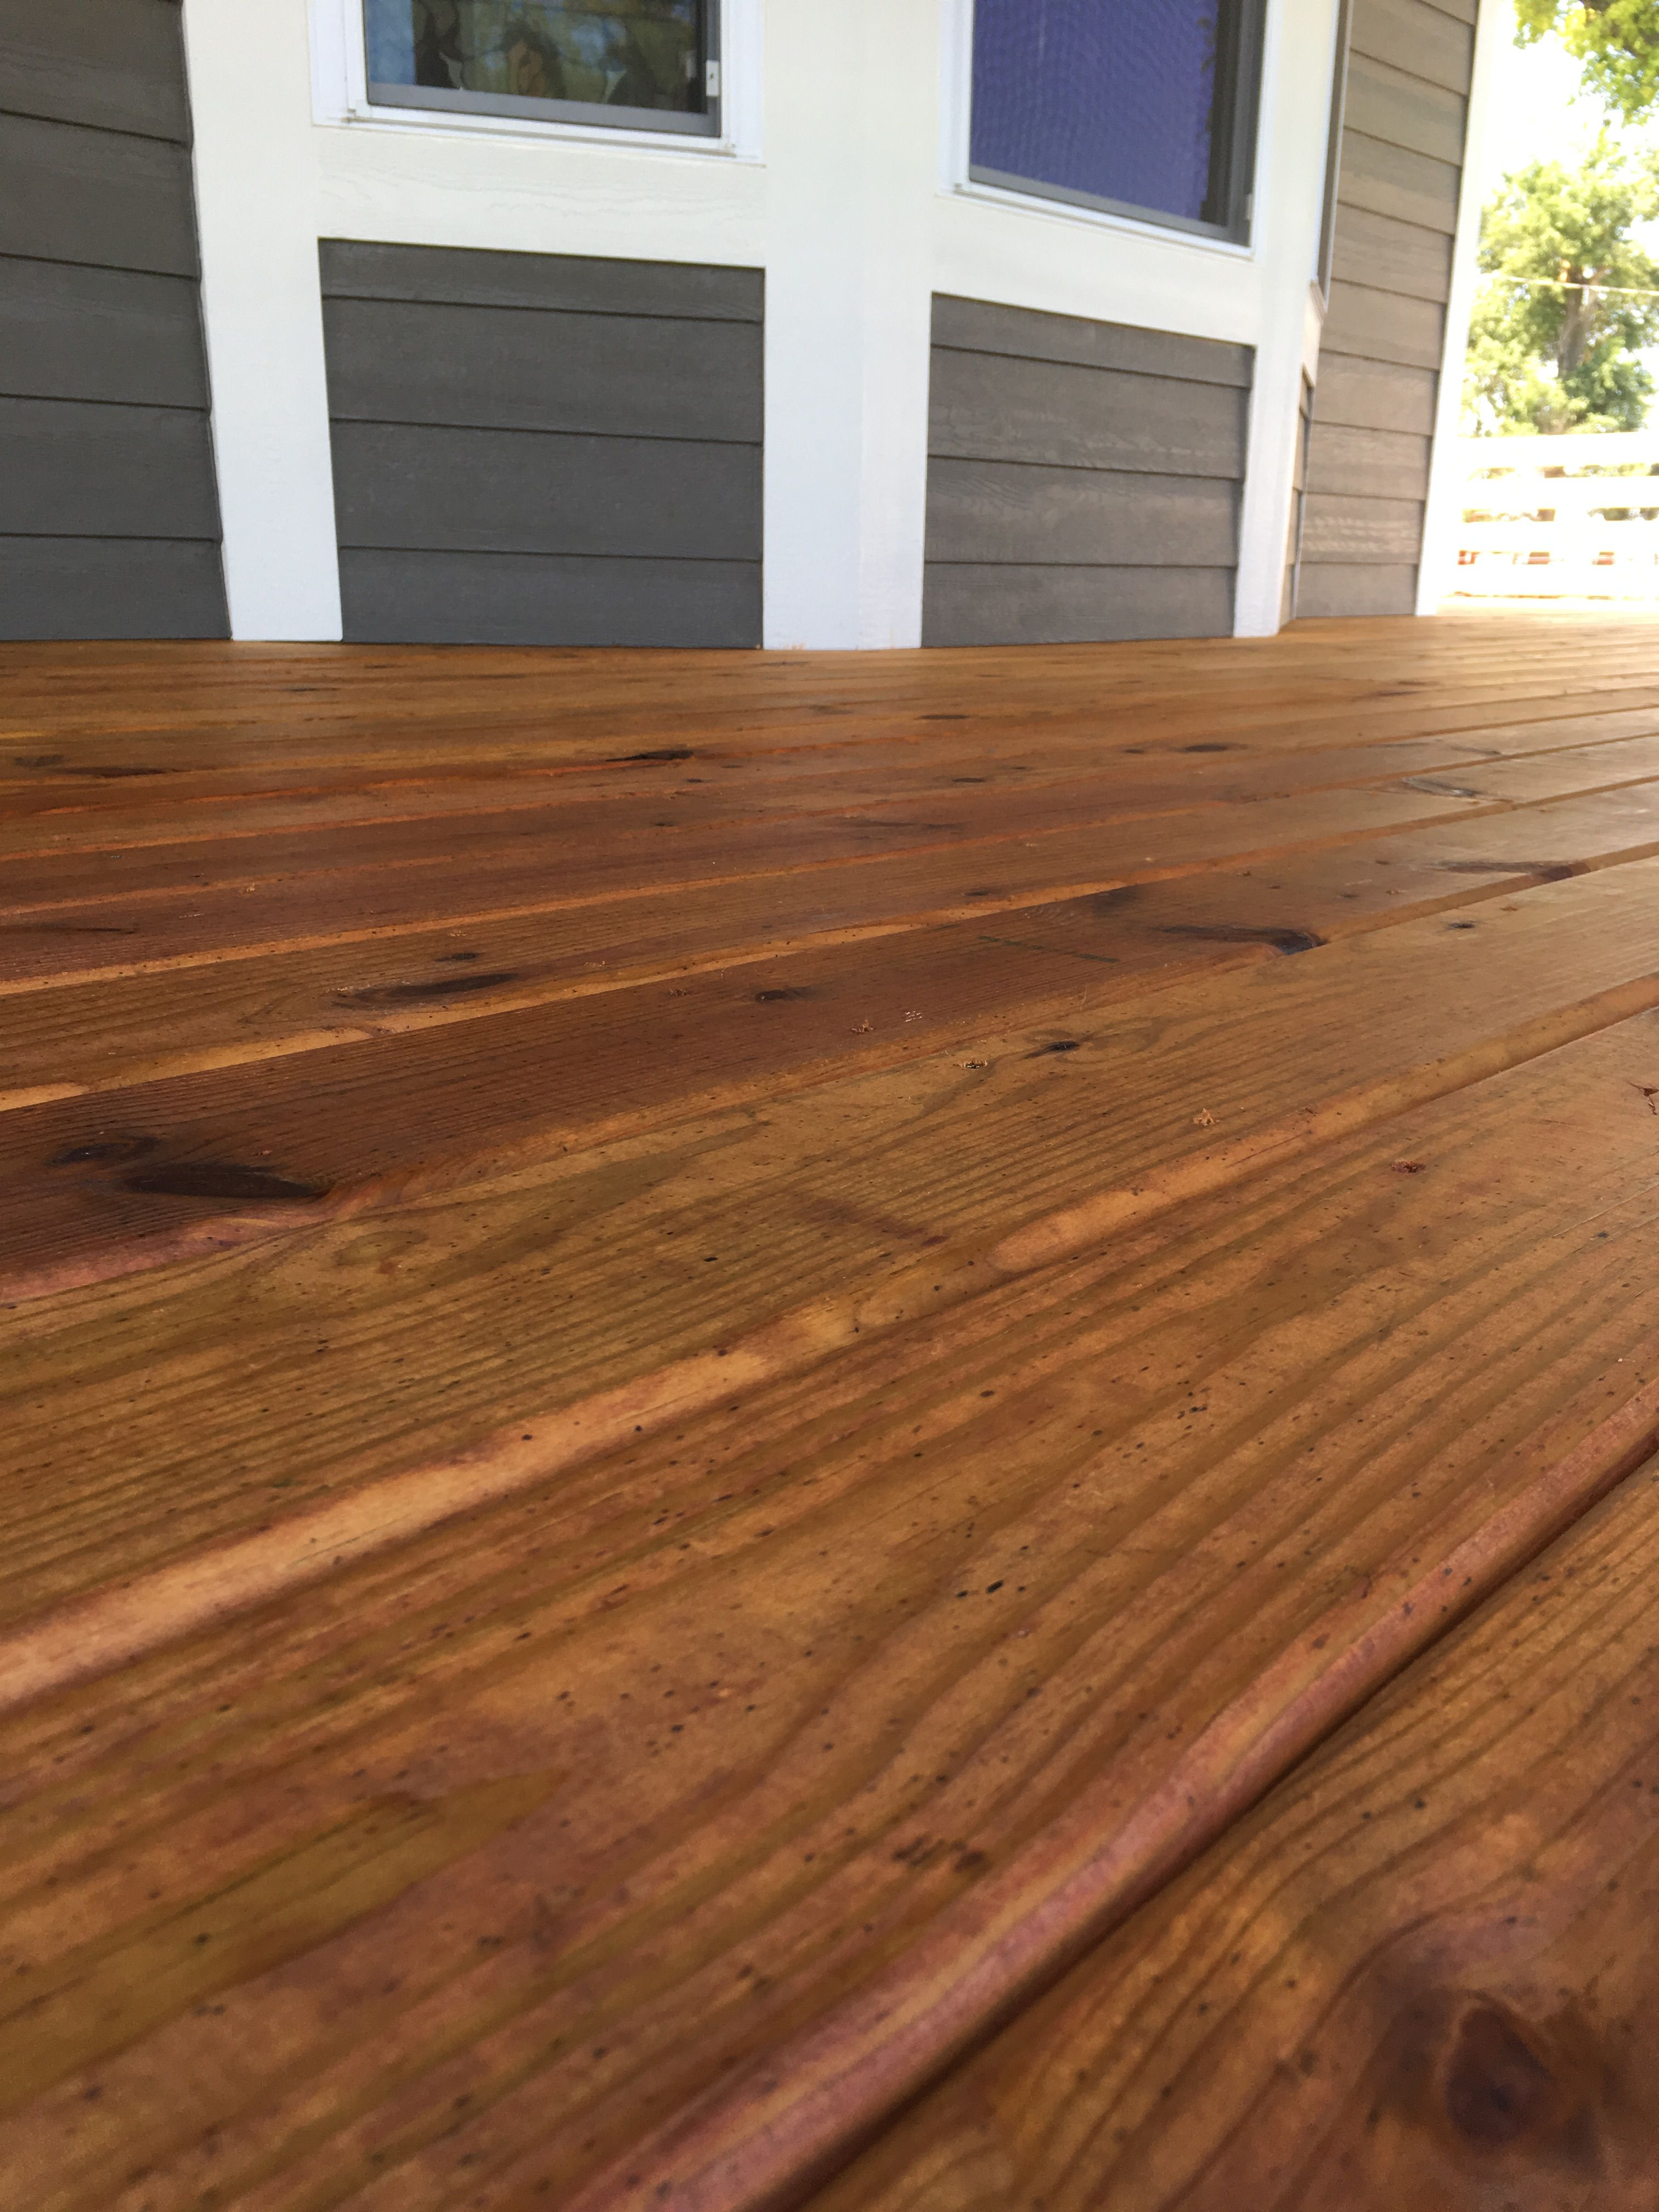 Sherwin Williams Superdeck Transparent Oil Redwood Sherwin Williams Deck Stain Staining Deck Deck Stain Colors